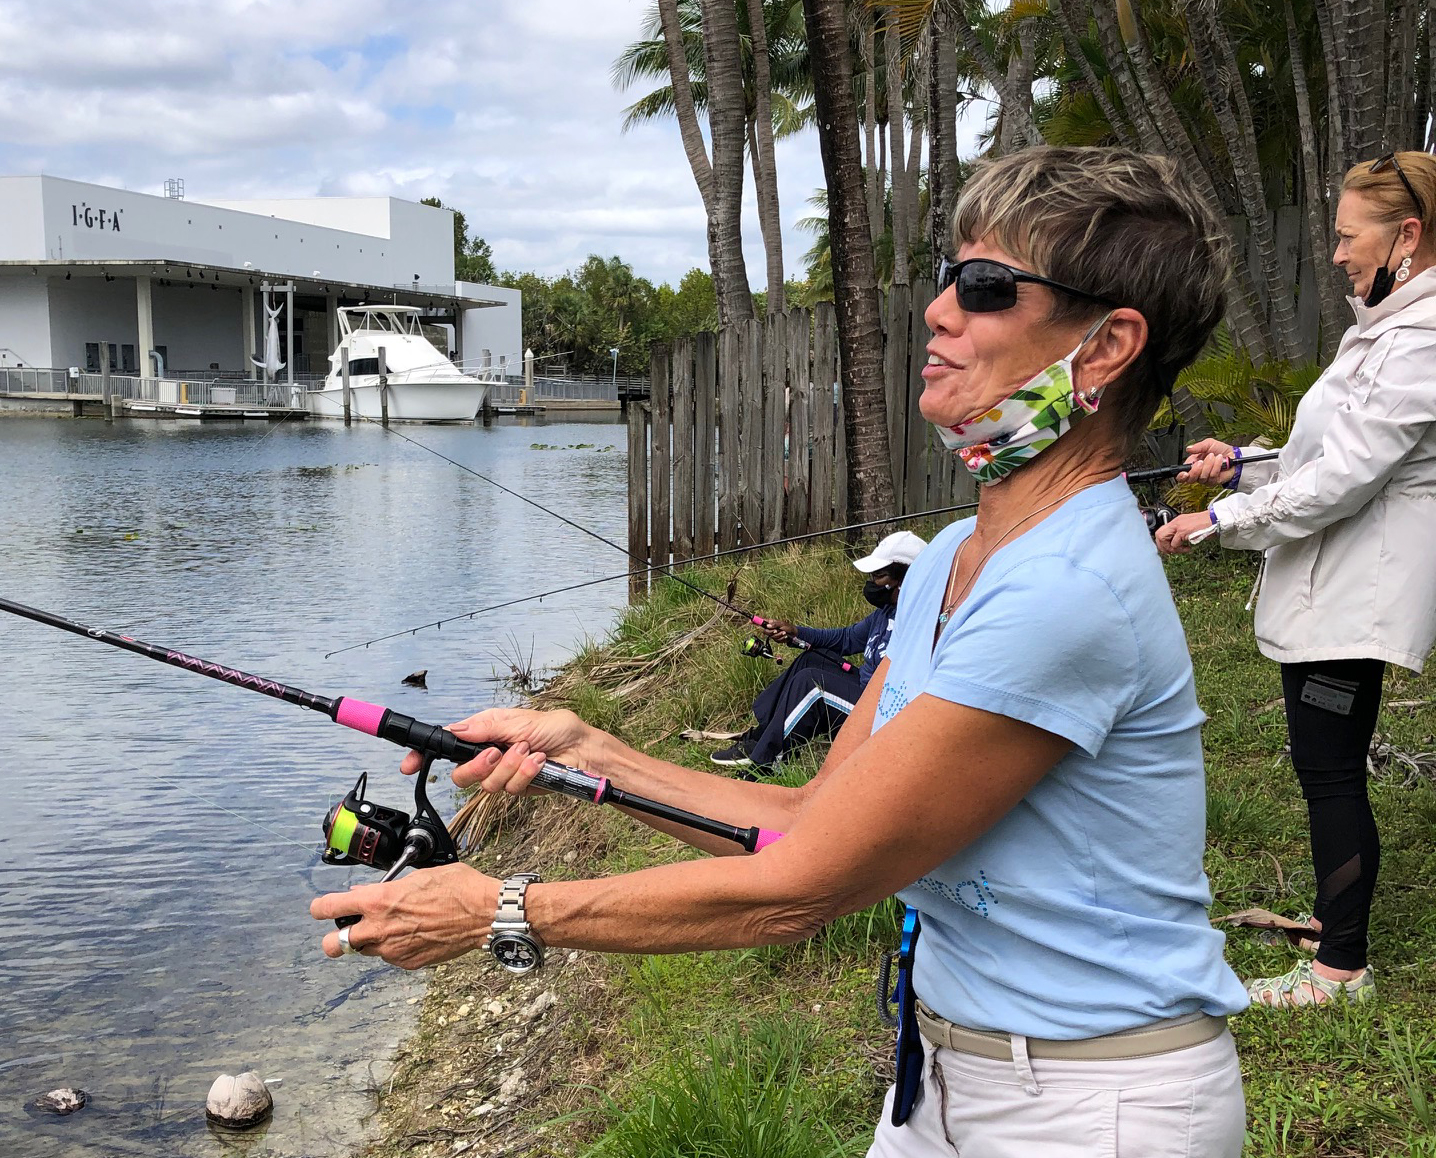 Marilyn DeMartini Fishing At The Ladies Lets Go Fishing Event in 2021